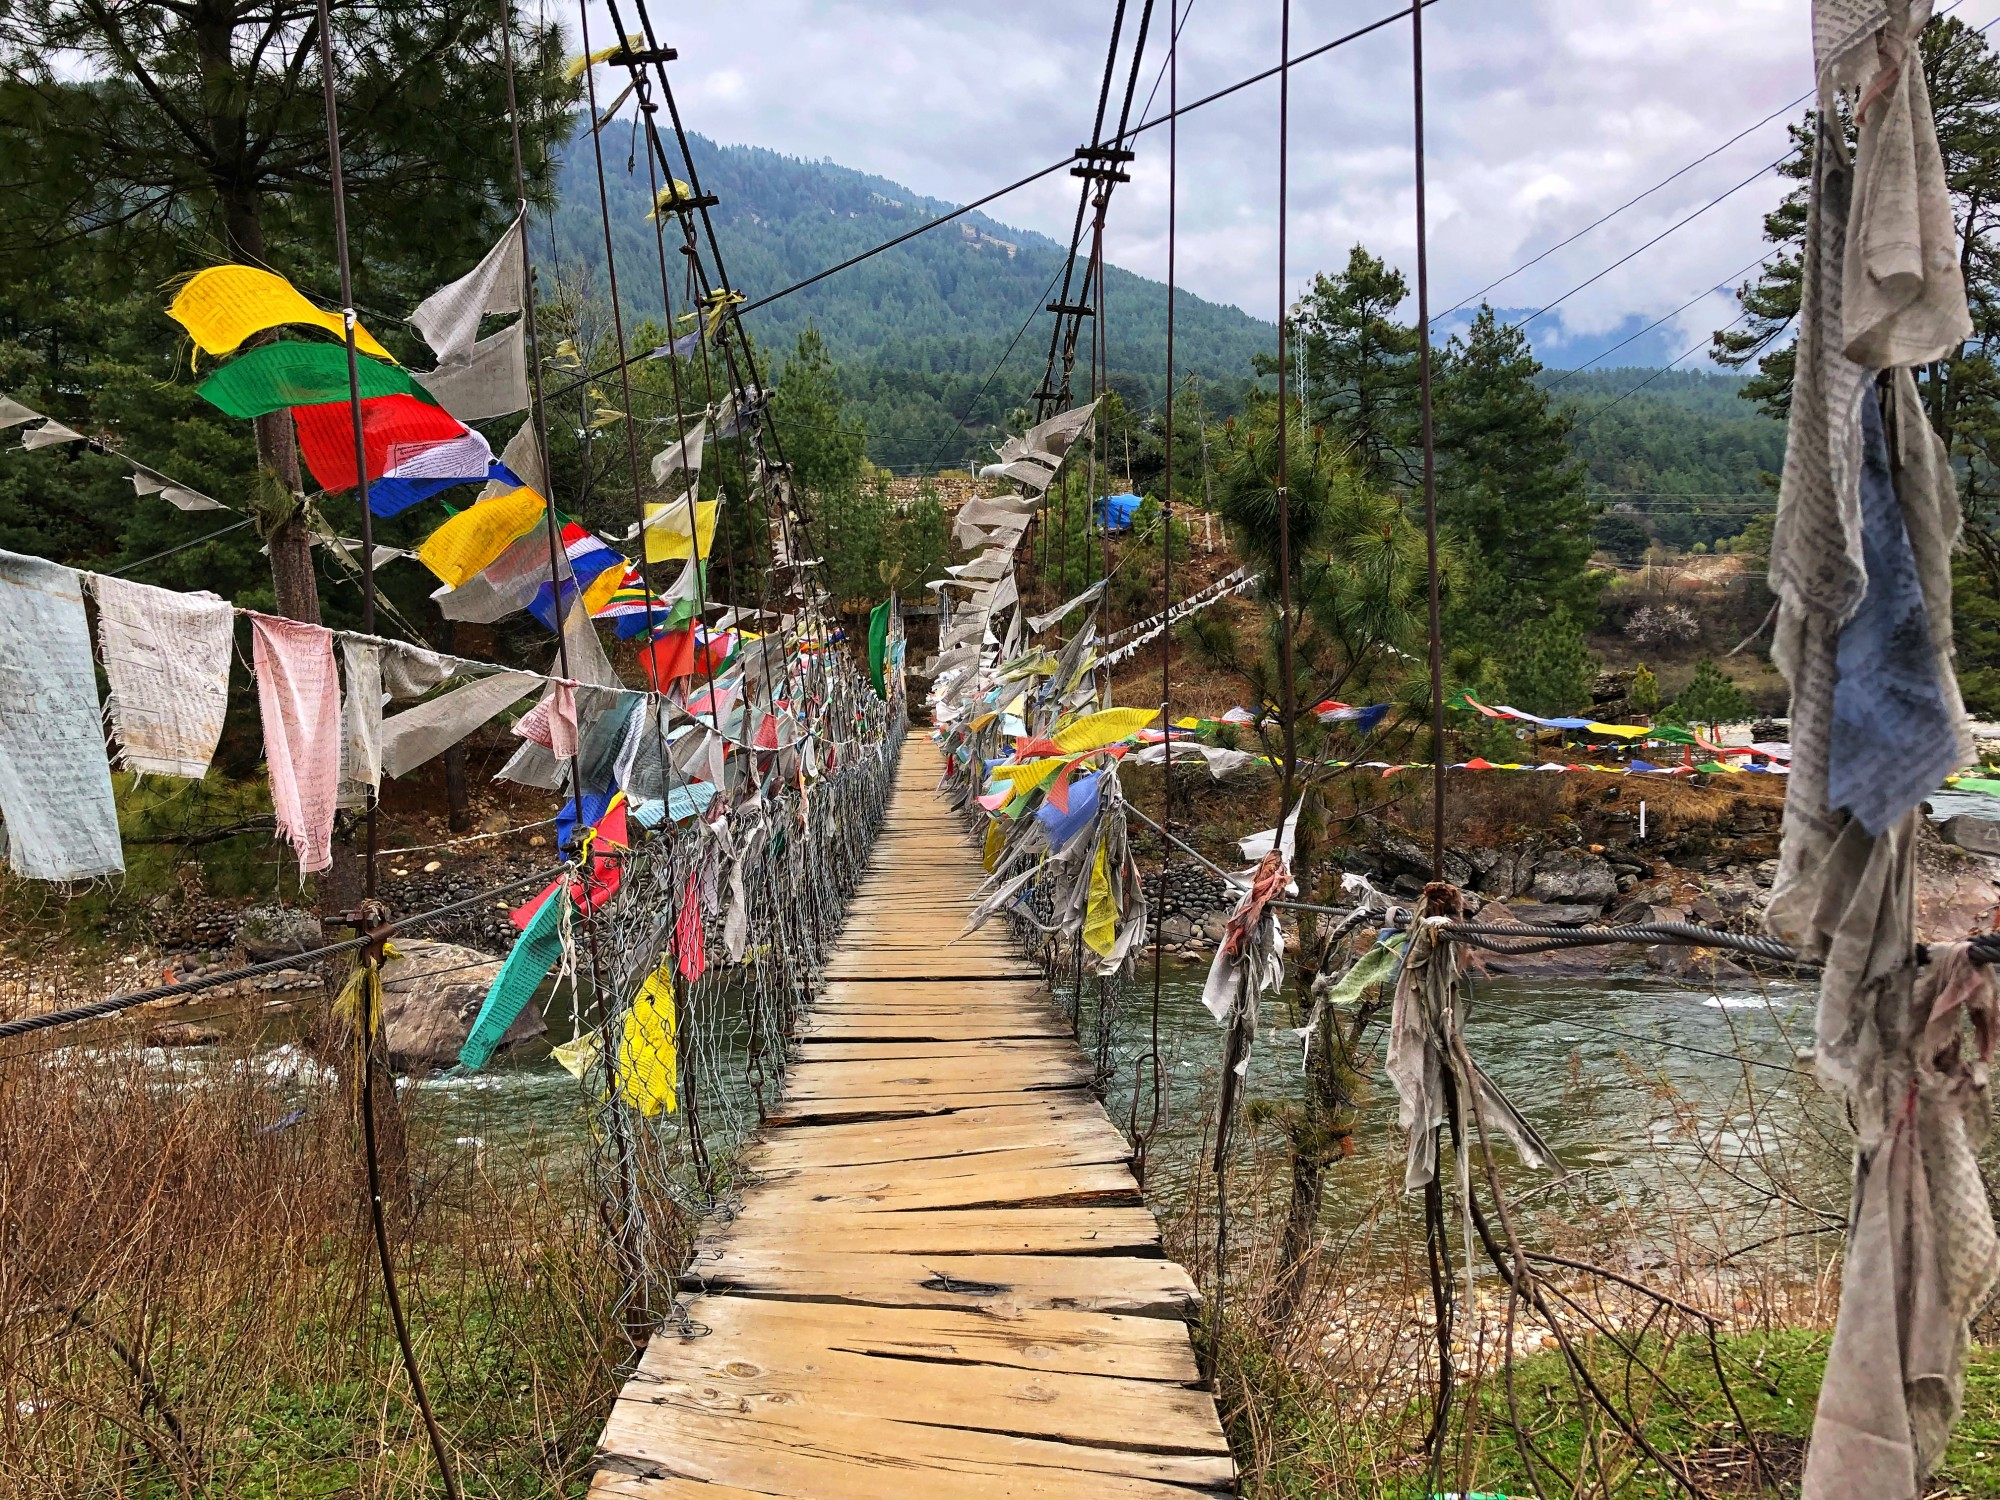 The Alps of Asia in Bumthang, Bhutan